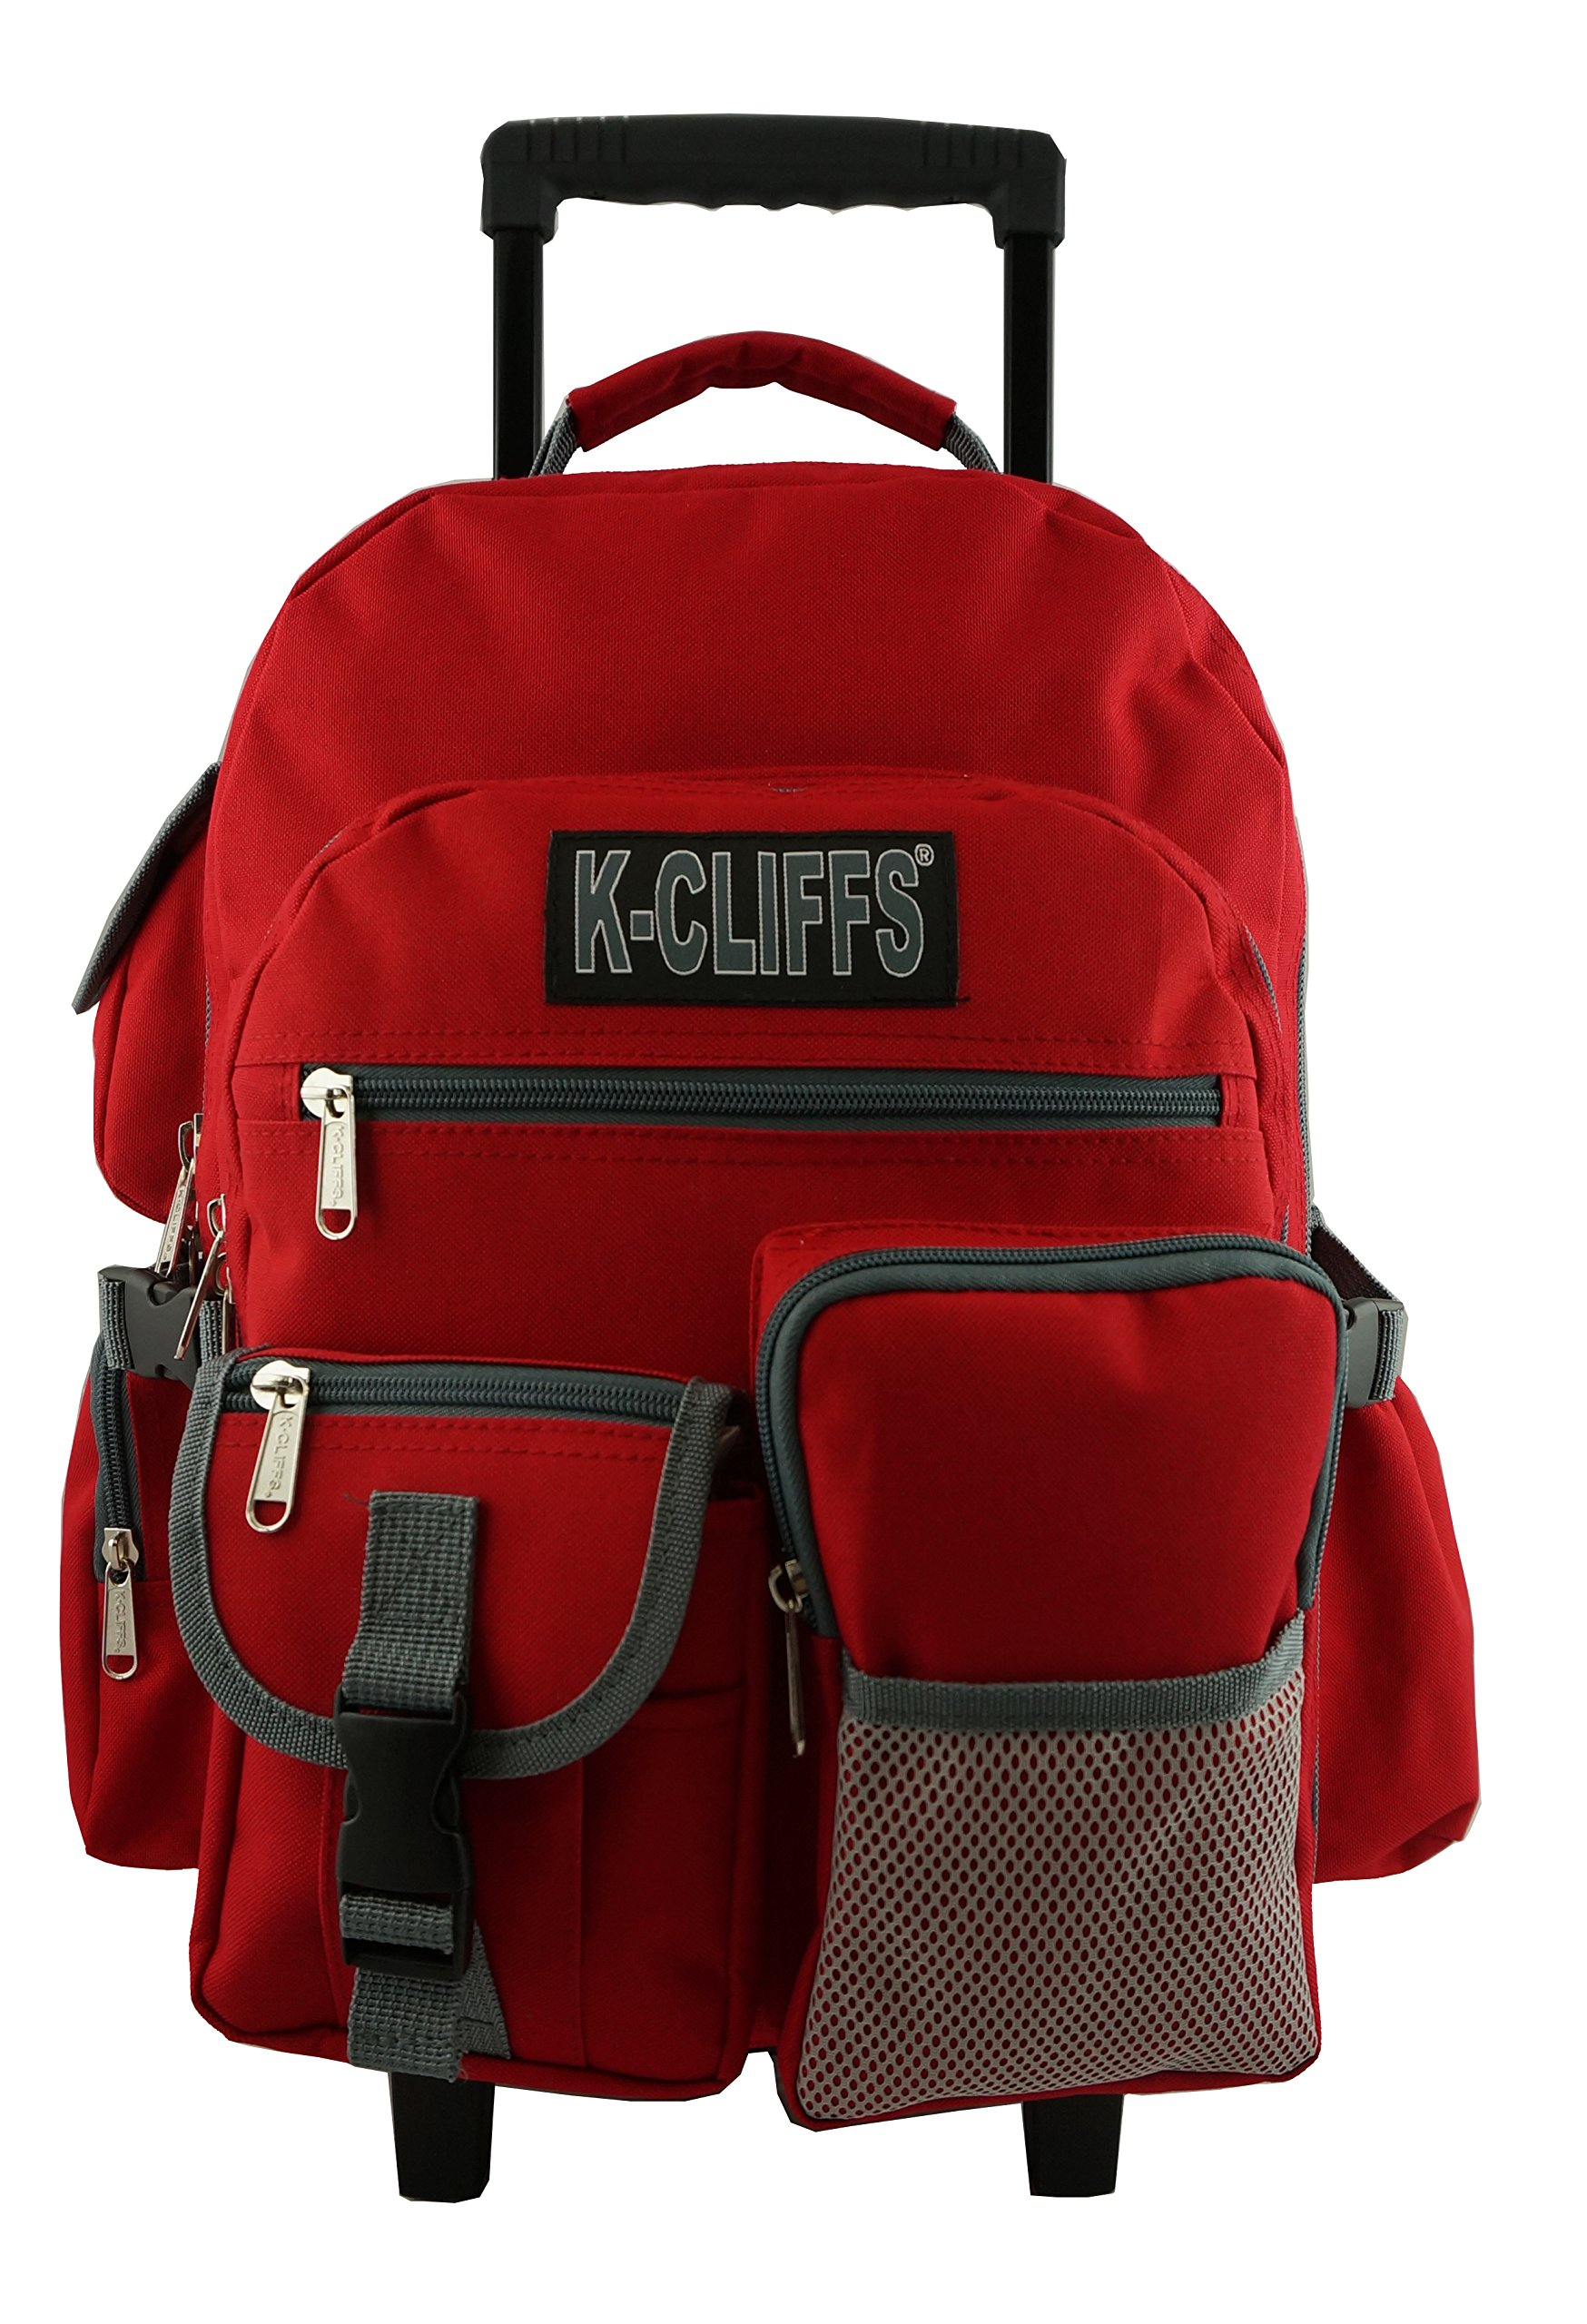 Rolling Backpack Wheeled School Backpack Book Bag Daypack with multiple Pockets Red